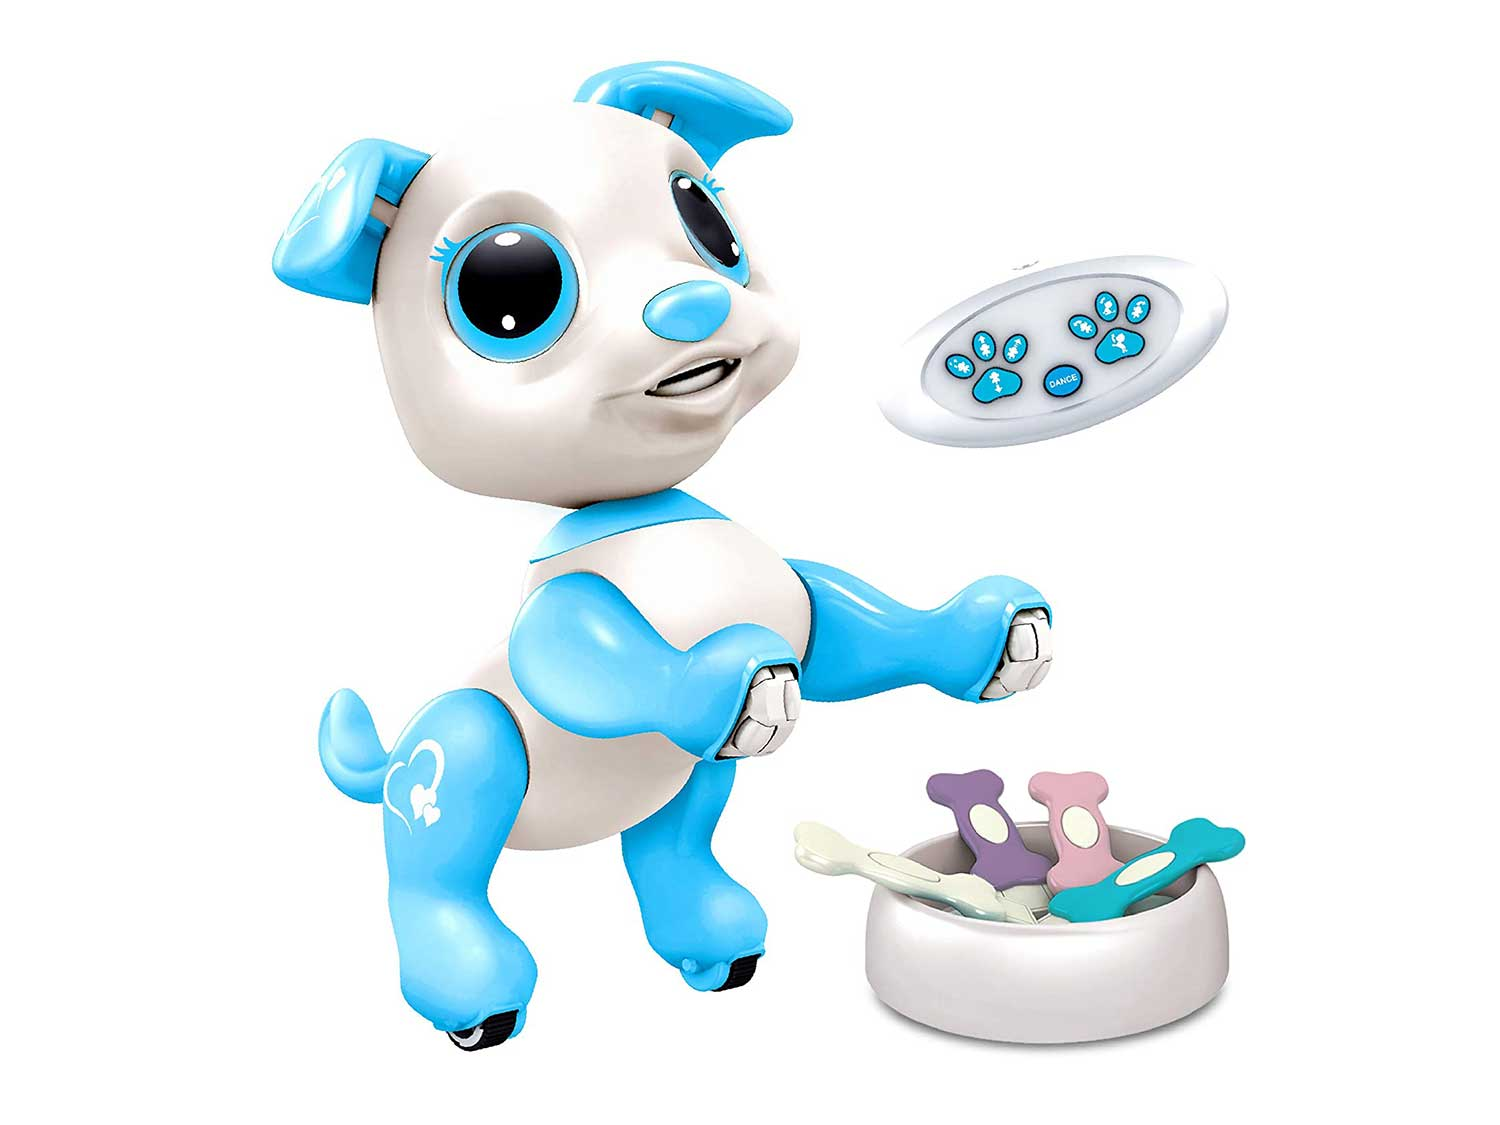 Power Your Fun Robo Pets Robot Dog - Remote Control Robot Toy, Smart RC Robot Puppy, Interactive Toys for Boys and Girls